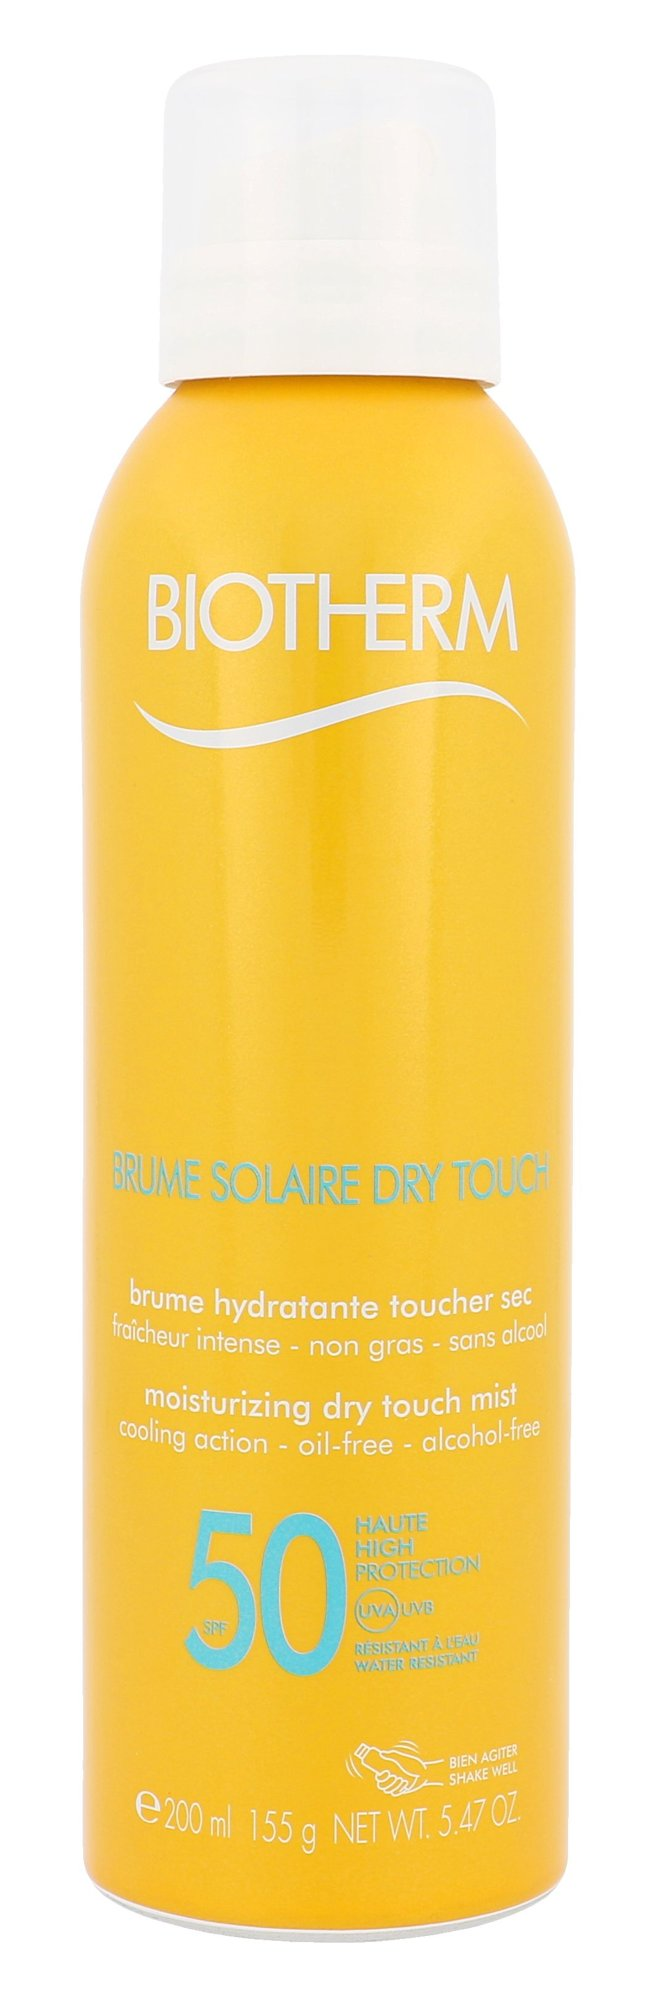 Biotherm Brume Solaire Cosmetic 200ml